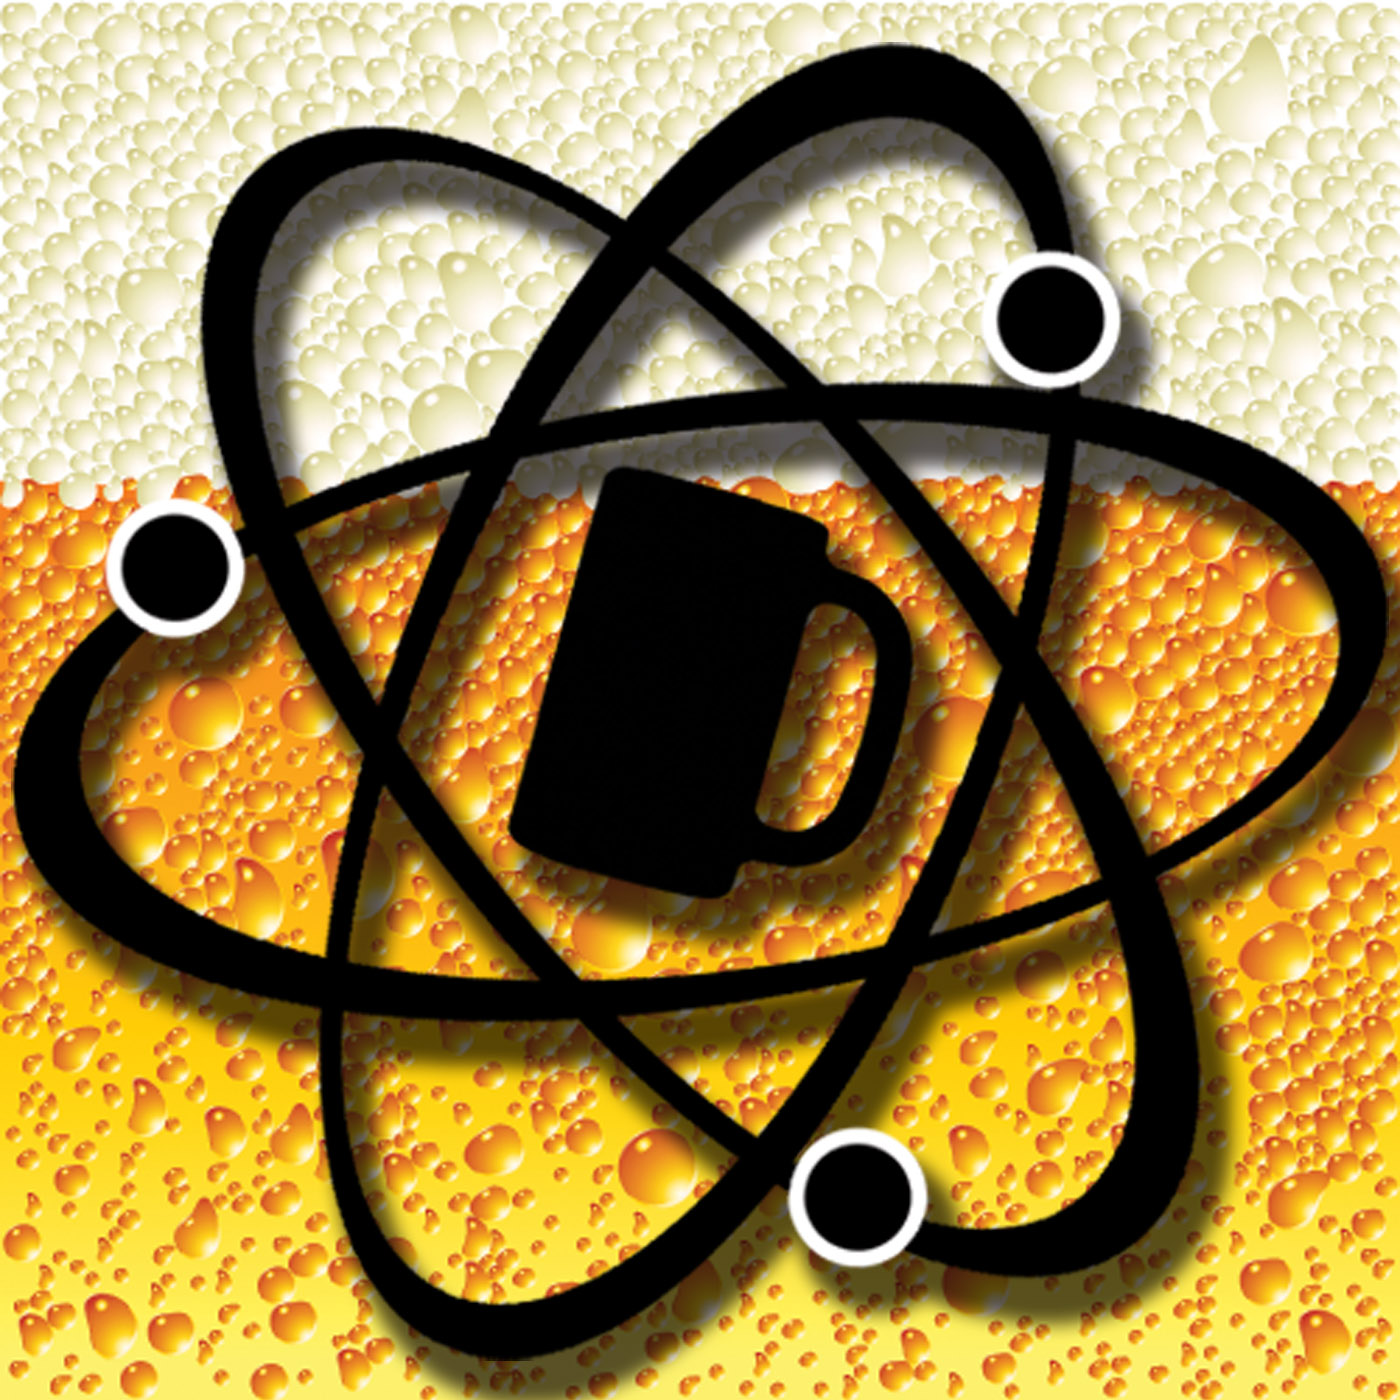 Science and Beer